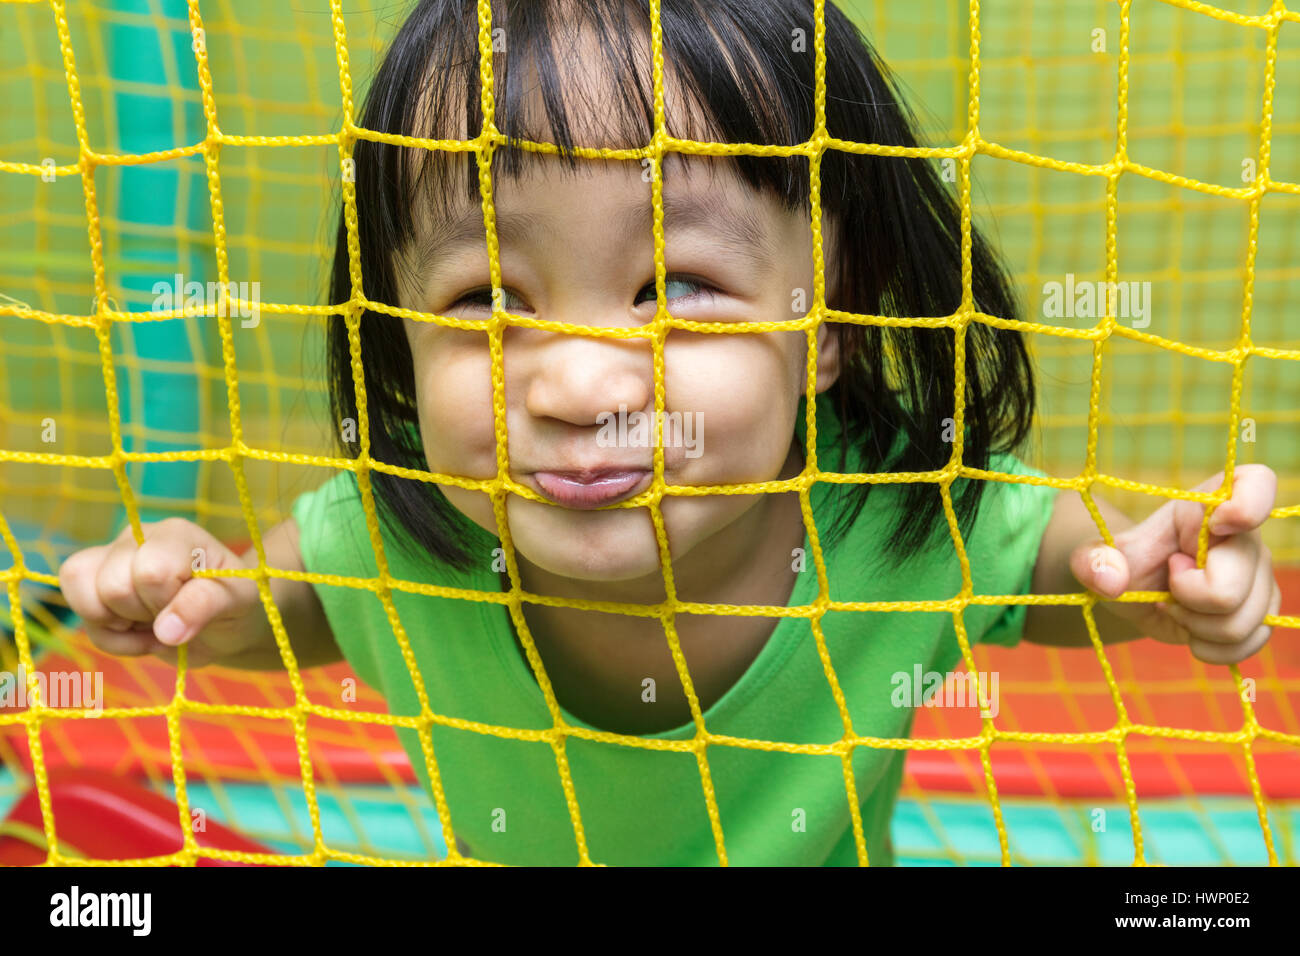 Happy Asian Chinese little girl playing behind the net at indoor playground. - Stock Image